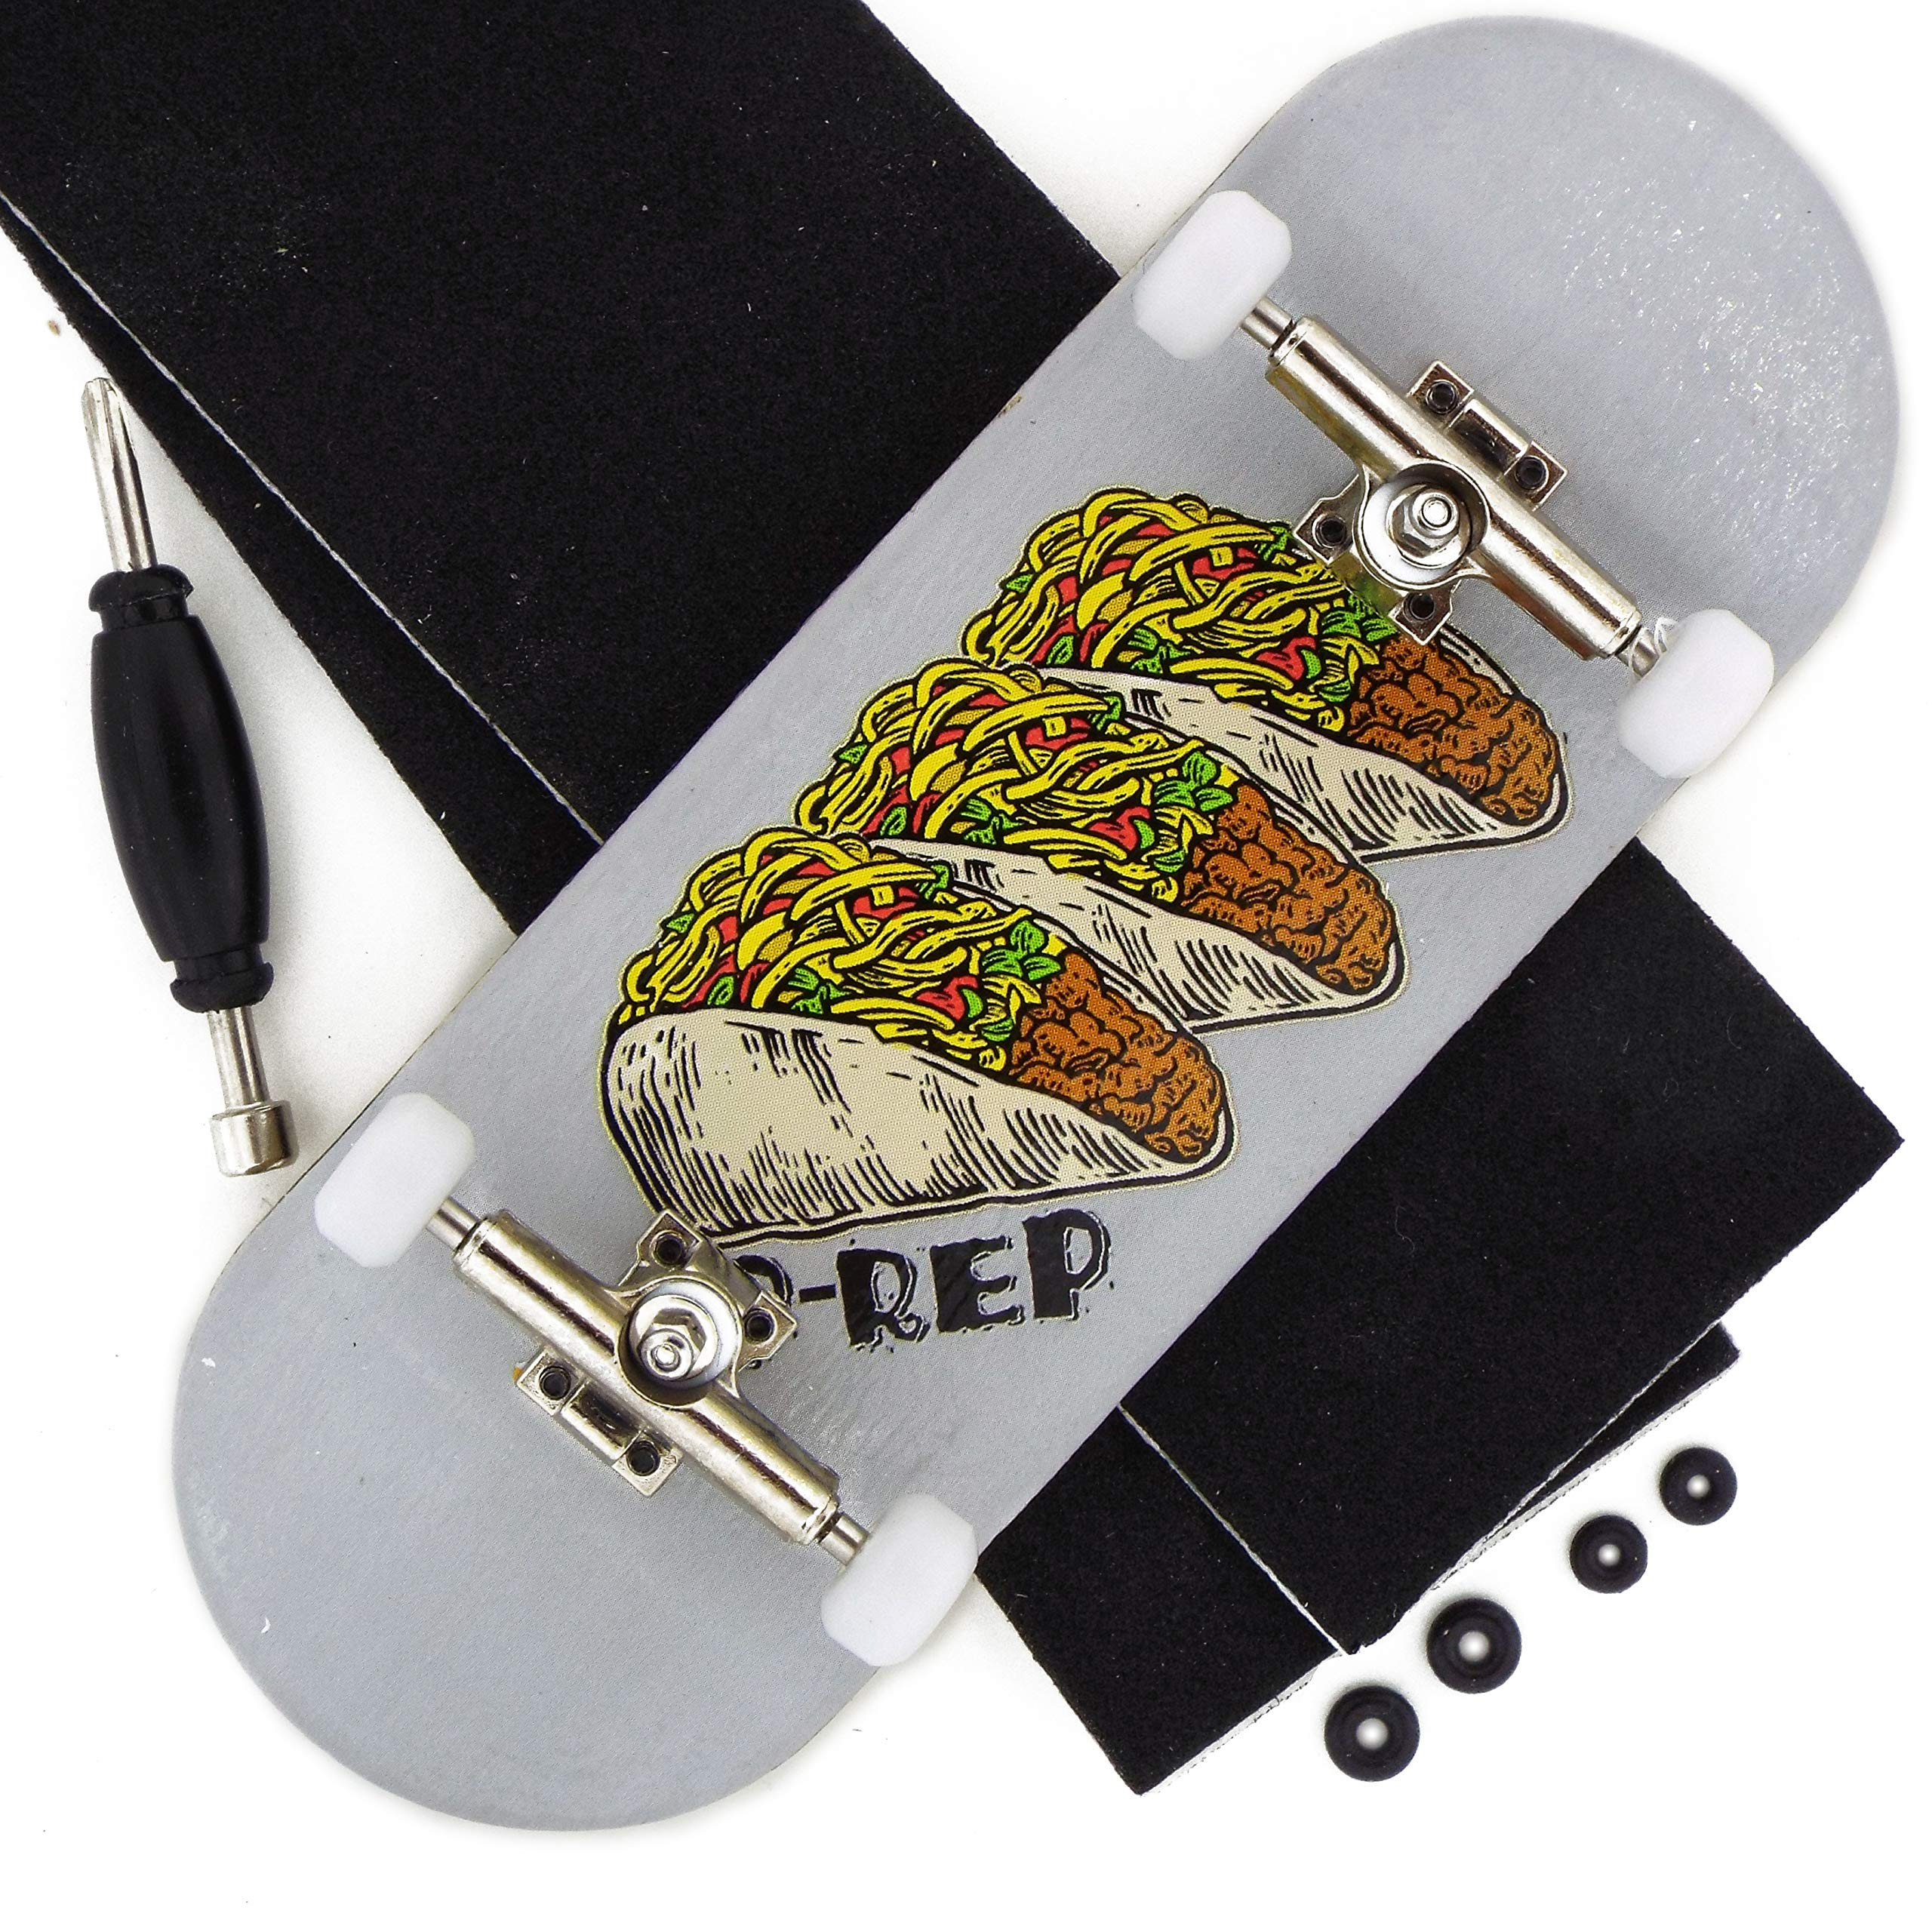 Peoples Republic Pro Complete Wooden Fingerboard 34mm x 100mm - Tres Tacos